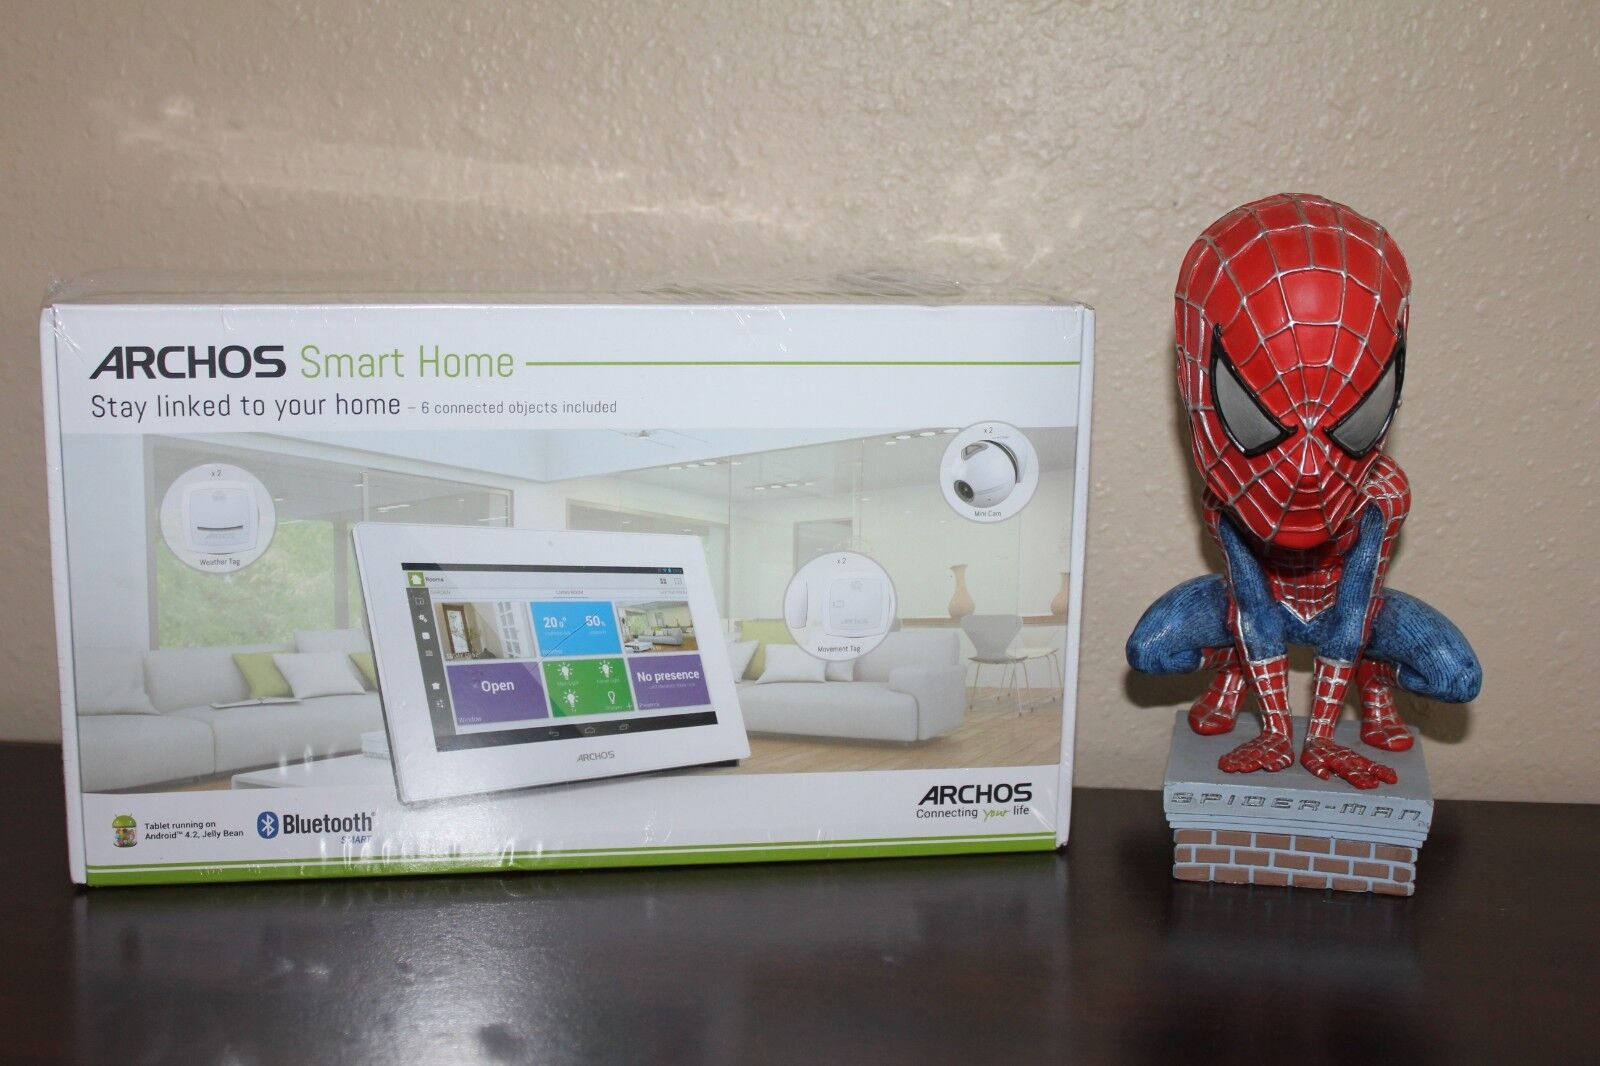 archos smart home surveillance kit with Bluetooth cameras motion and weather